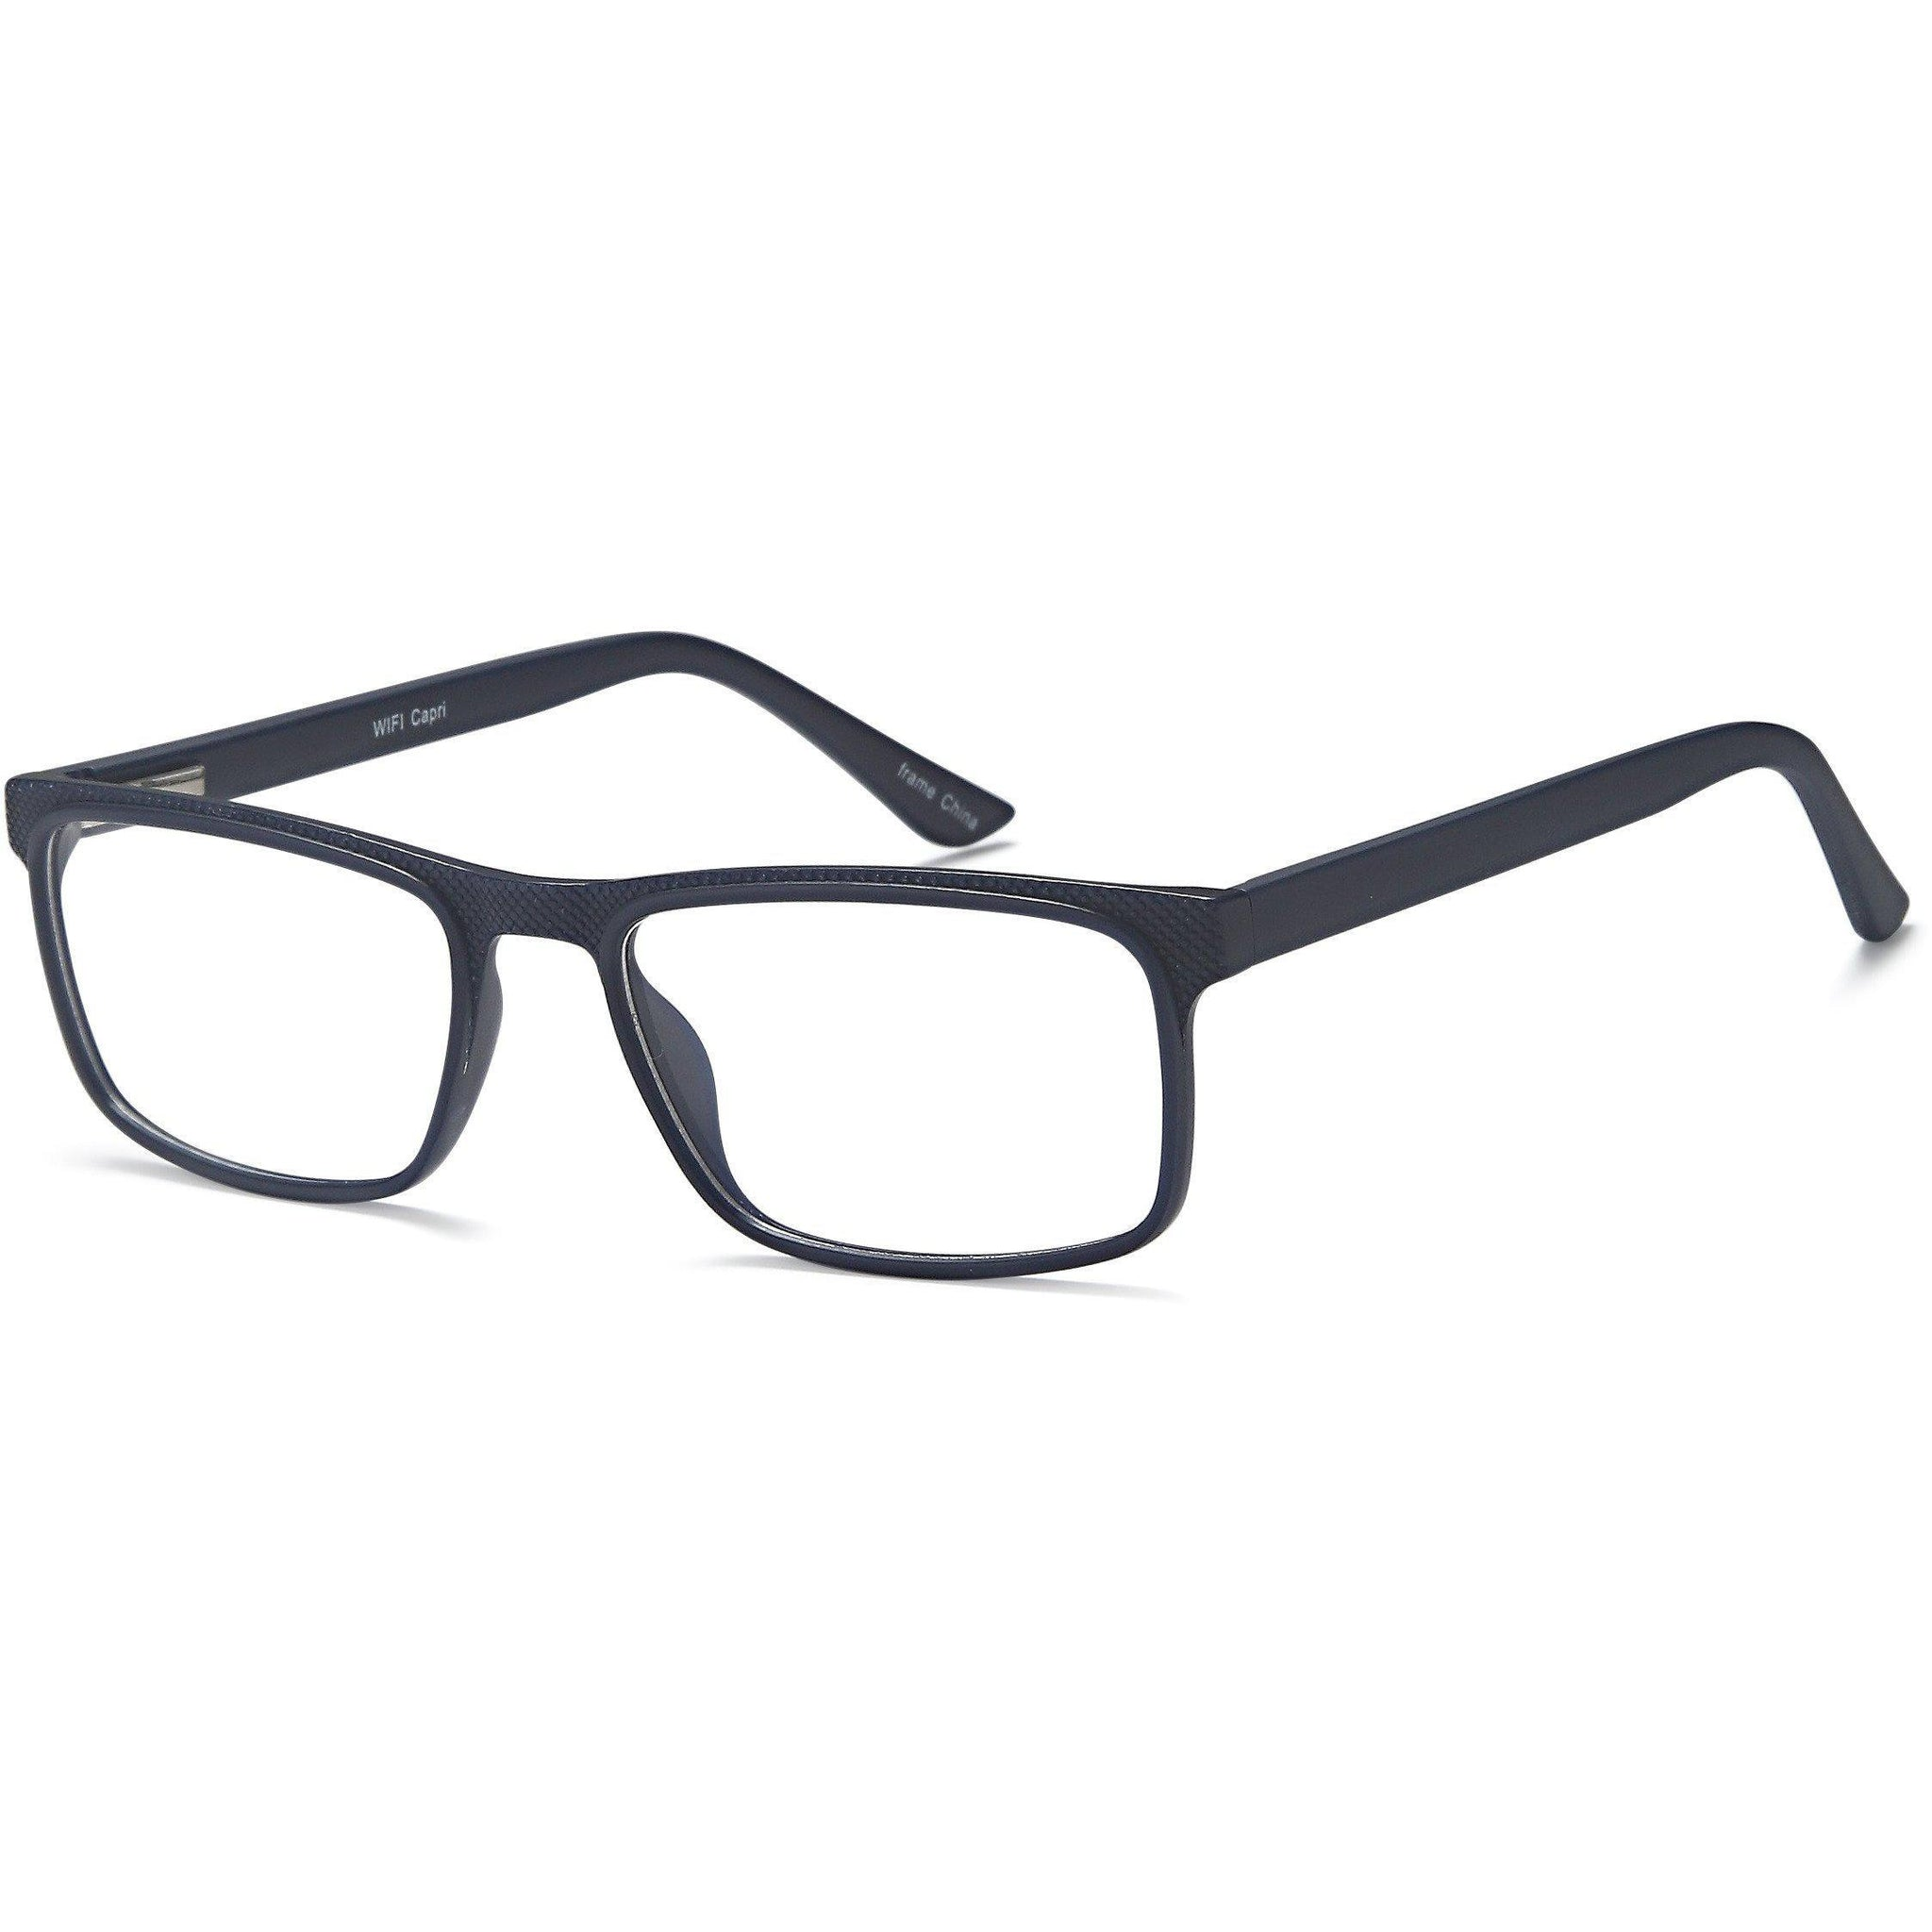 GEN Y Prescription Glasses WIFI Eyeglasses Frame